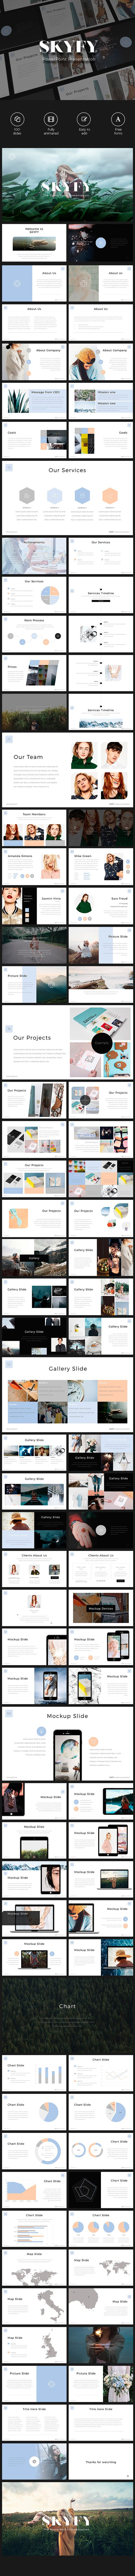 SKYFY PowerPoint Template  #portfolio #popular • Download ➝ https://graphicriver.net/item/skyfy-powerpoint-template/18395812?ref=pxcr